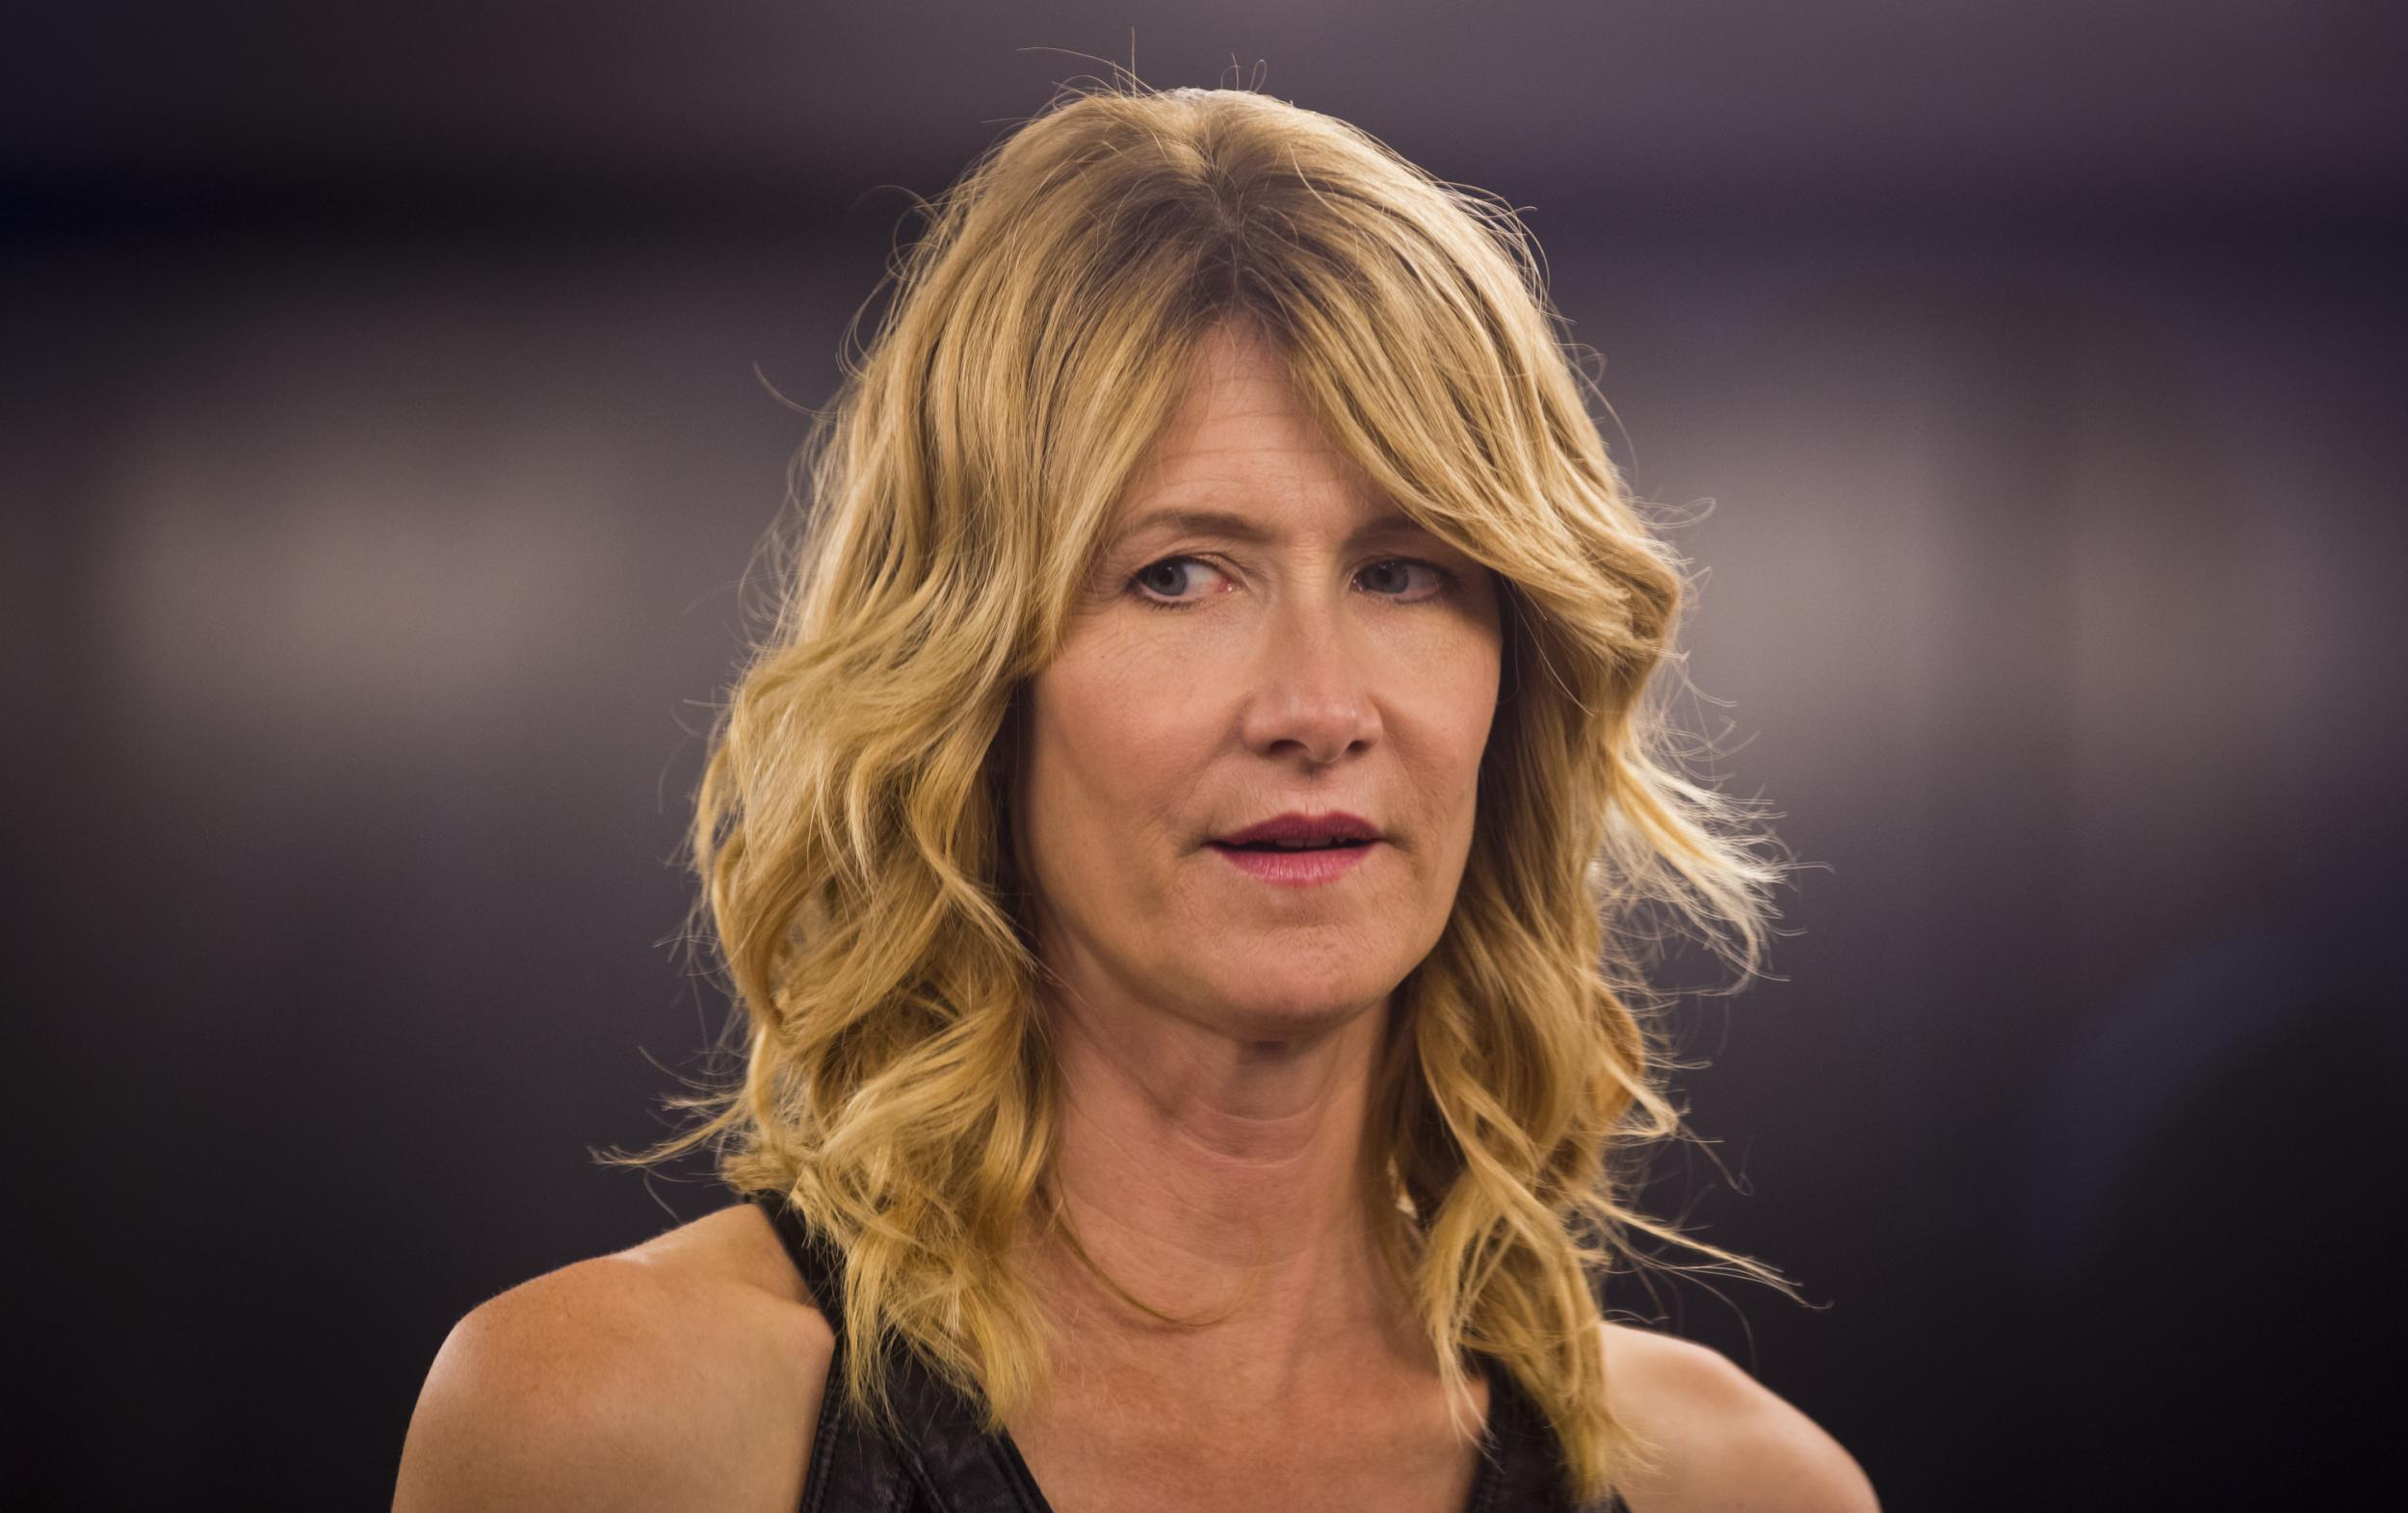 laura dern hawtcelebslaura dern young, laura dern twin peaks, laura dern instagram, laura dern husband, laura dern height, laura dern imdb, laura dern foto, laura dern 1993, laura dern ancestry, laura dern brad pitt, laura dern fansite, laura dern just jared, laura dern interview, laura dern series, laura dern hawtcelebs, laura dern oscar, laura dern actress, laura dern jurassic park, laura dern and kyle maclachlan, laura dern zimbio